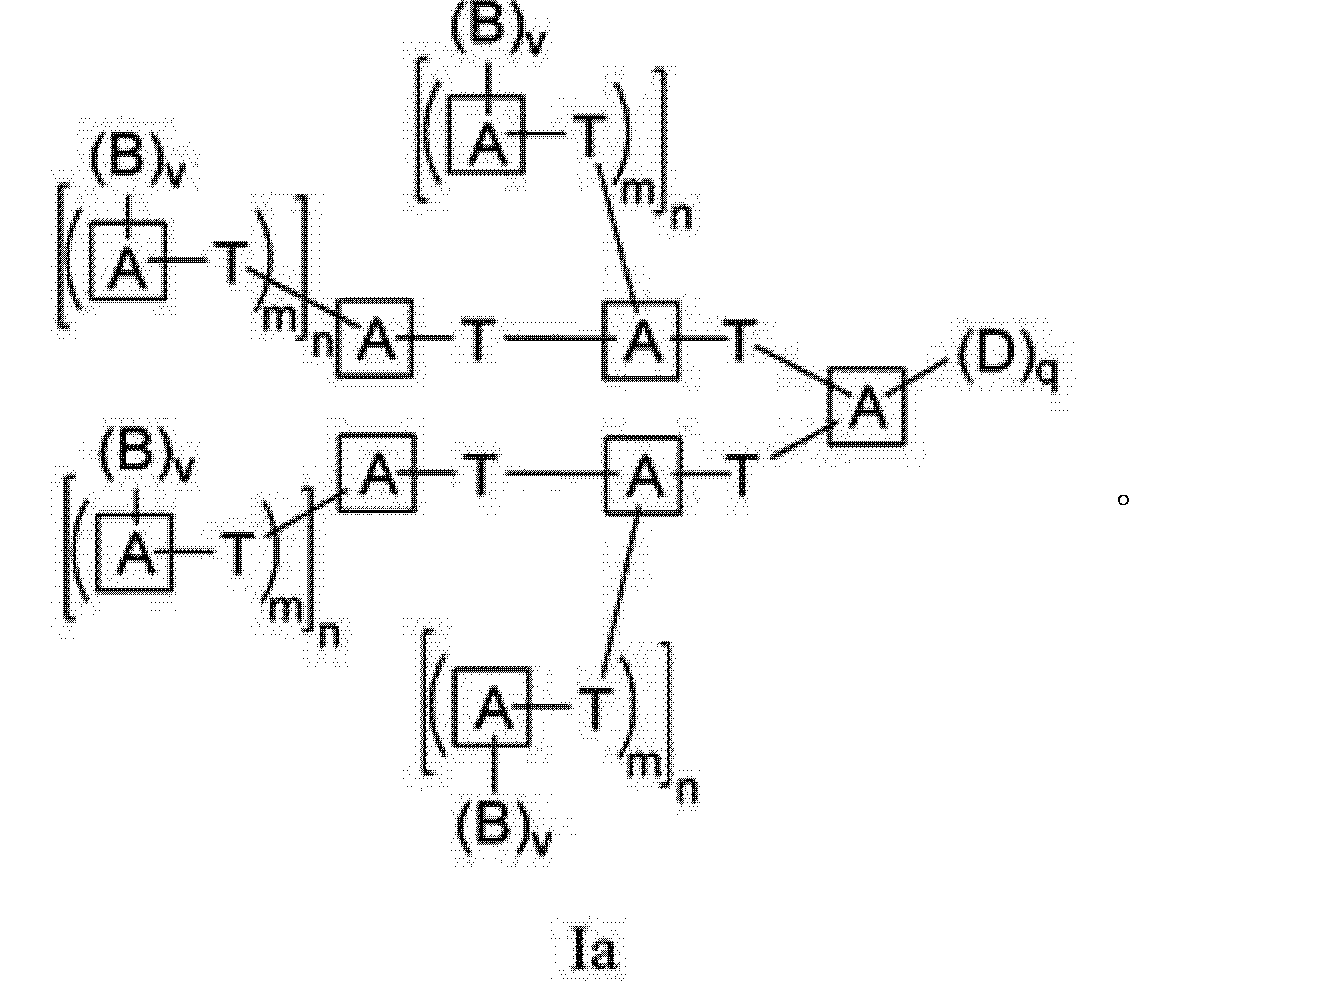 Cn102365025a Conjugate Based Systems For Controlled Drug Delivery Ory Circuit Diagram Continued Figure Cn102365025ad00911